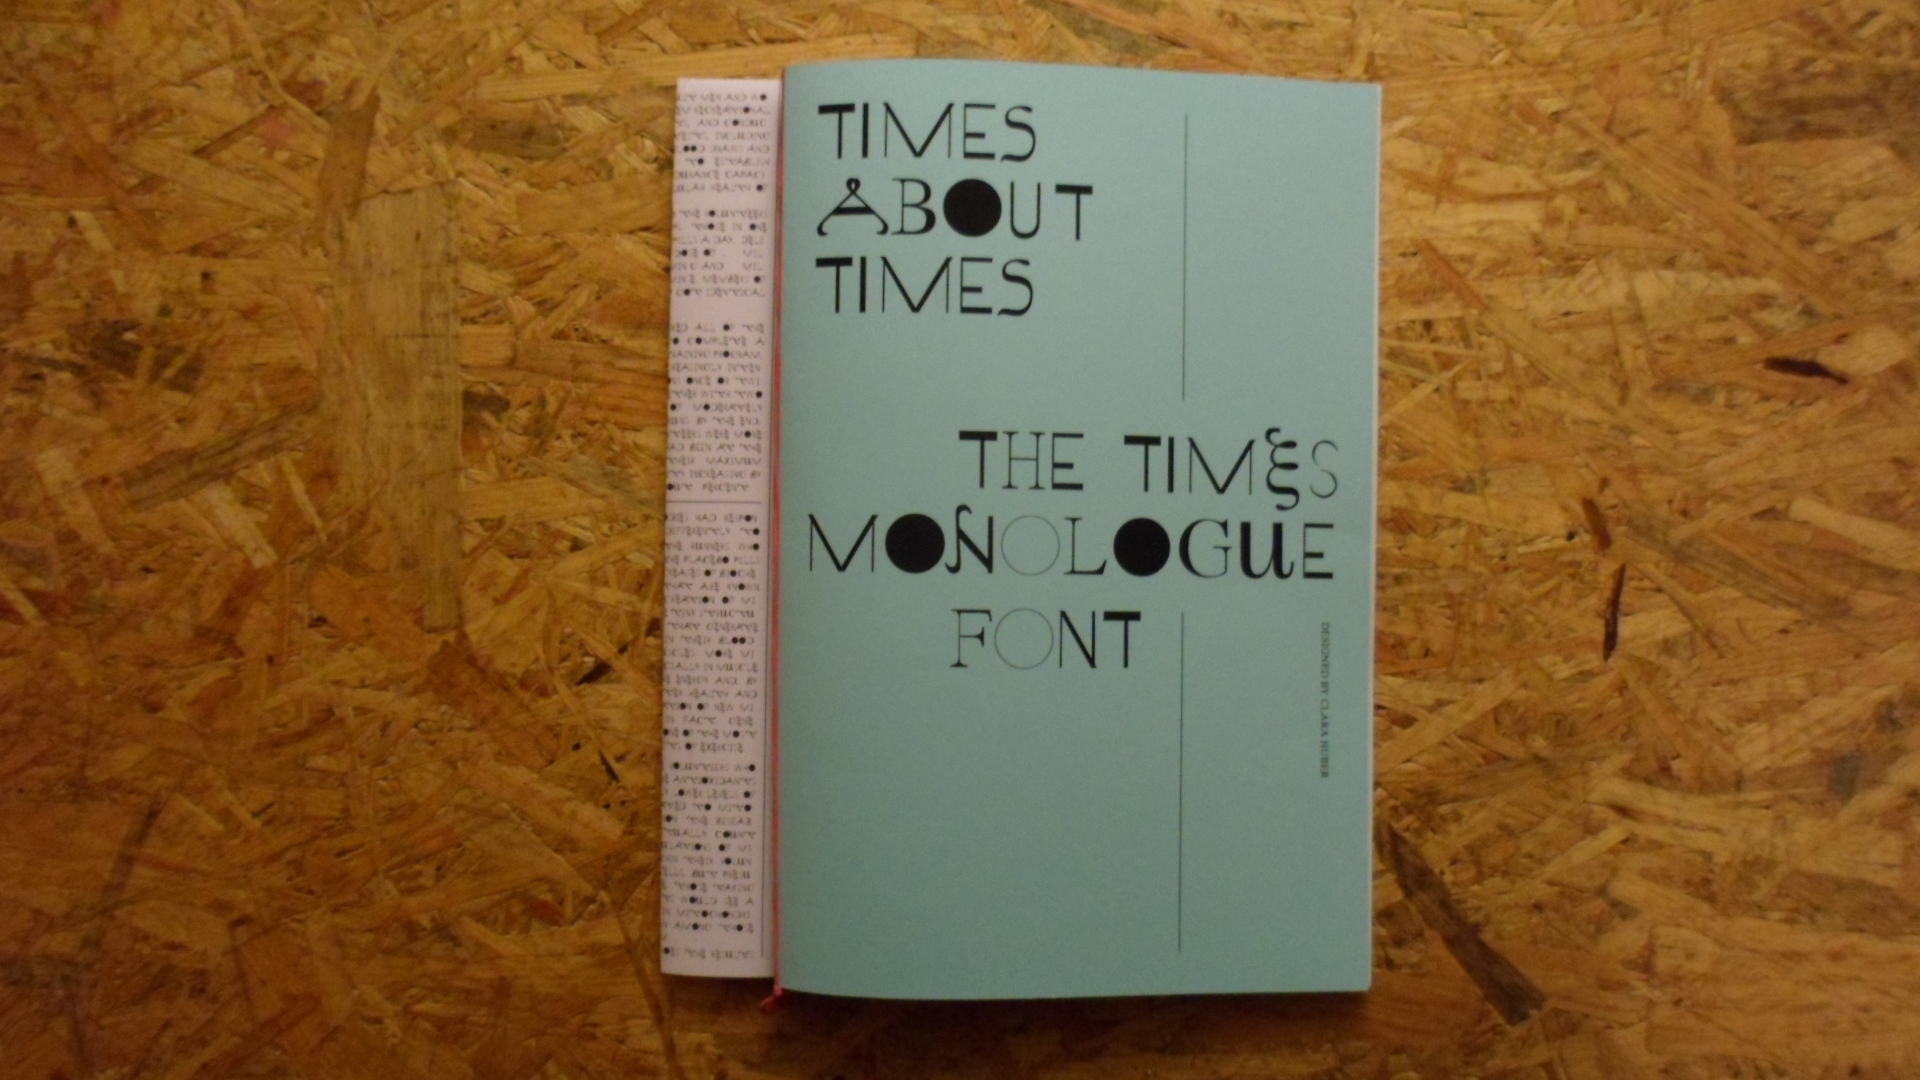 clara huber – visual communication ● The Times Monologue Font